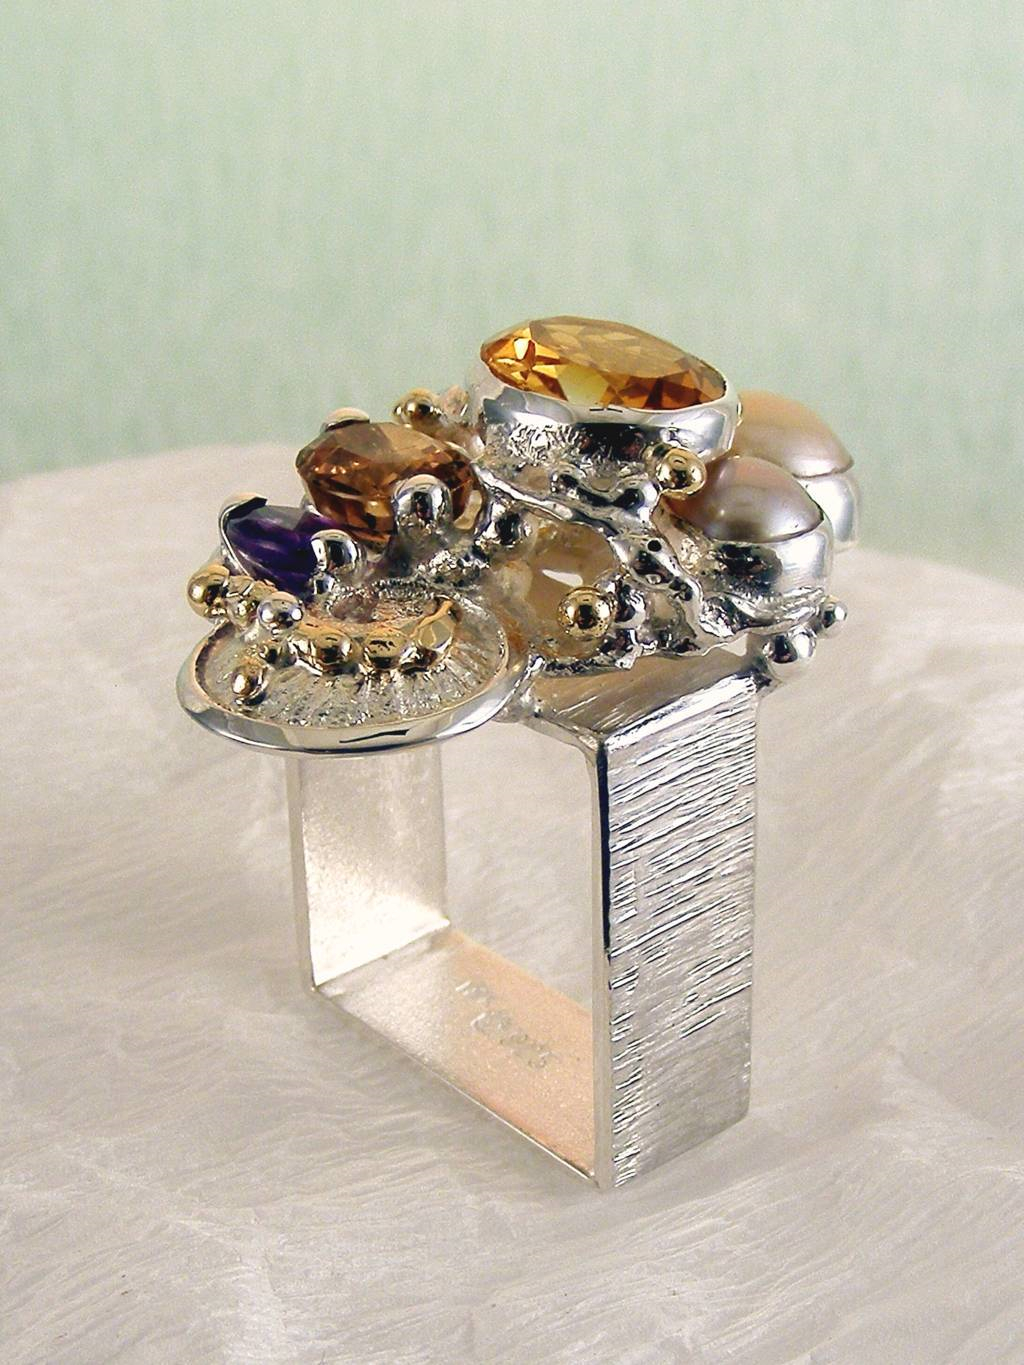 Original Handmade in Sterling Silver and 18 Karat Gold with Amethyst, Citrine, Pink Tourmaline, Pearls, Amethyst and Blue Topaz One of a Kind Original Handmade Ring #4291